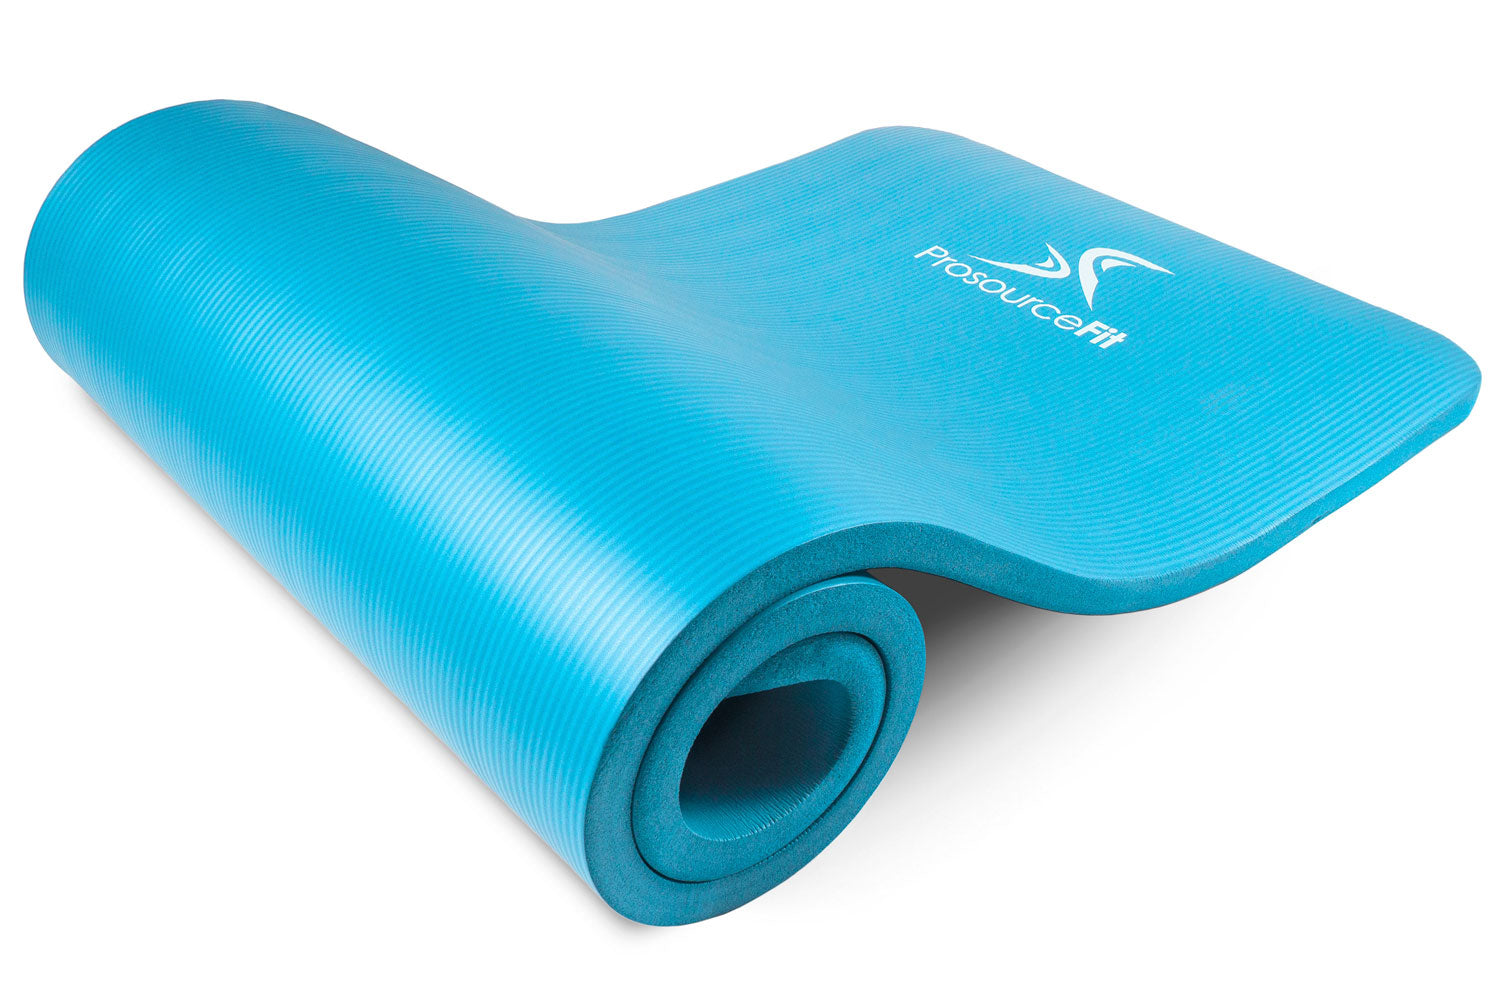 Aqua Extra Thick Yoga and Pilates Mat 1 inch